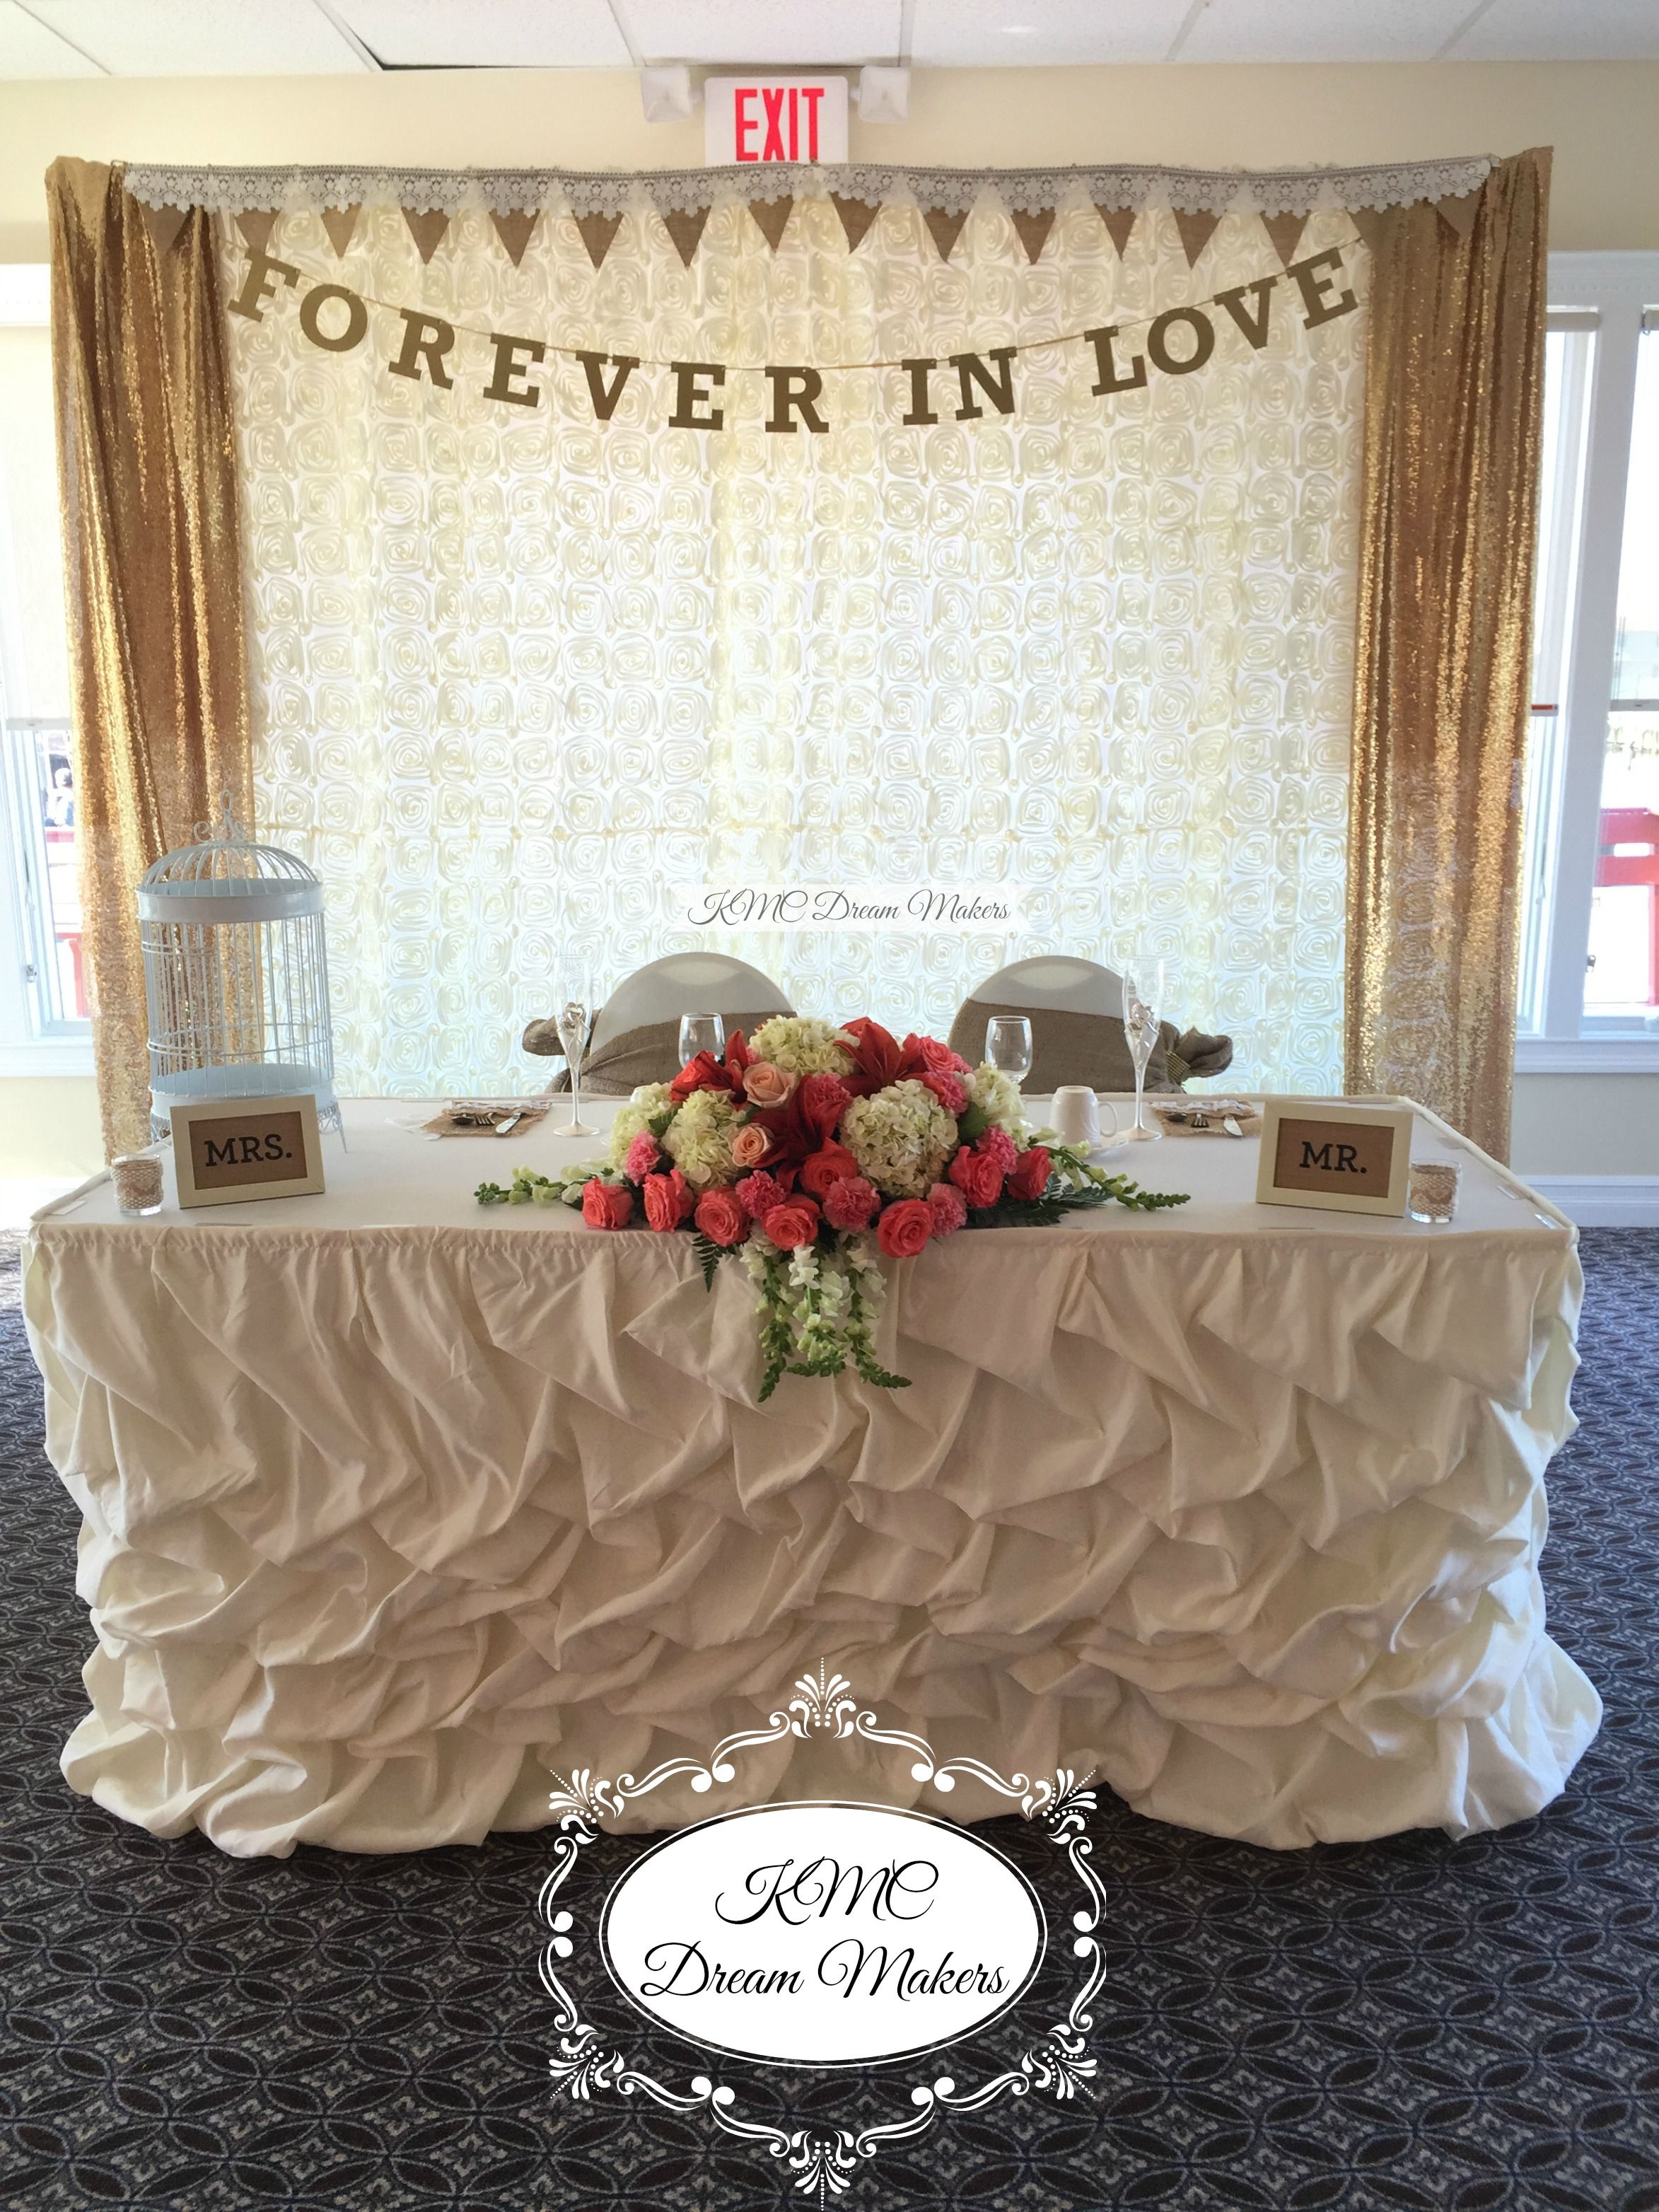 Bride & Groom Table #Kmcdreammakers #Flowers #Bride #Groom #Weddings #